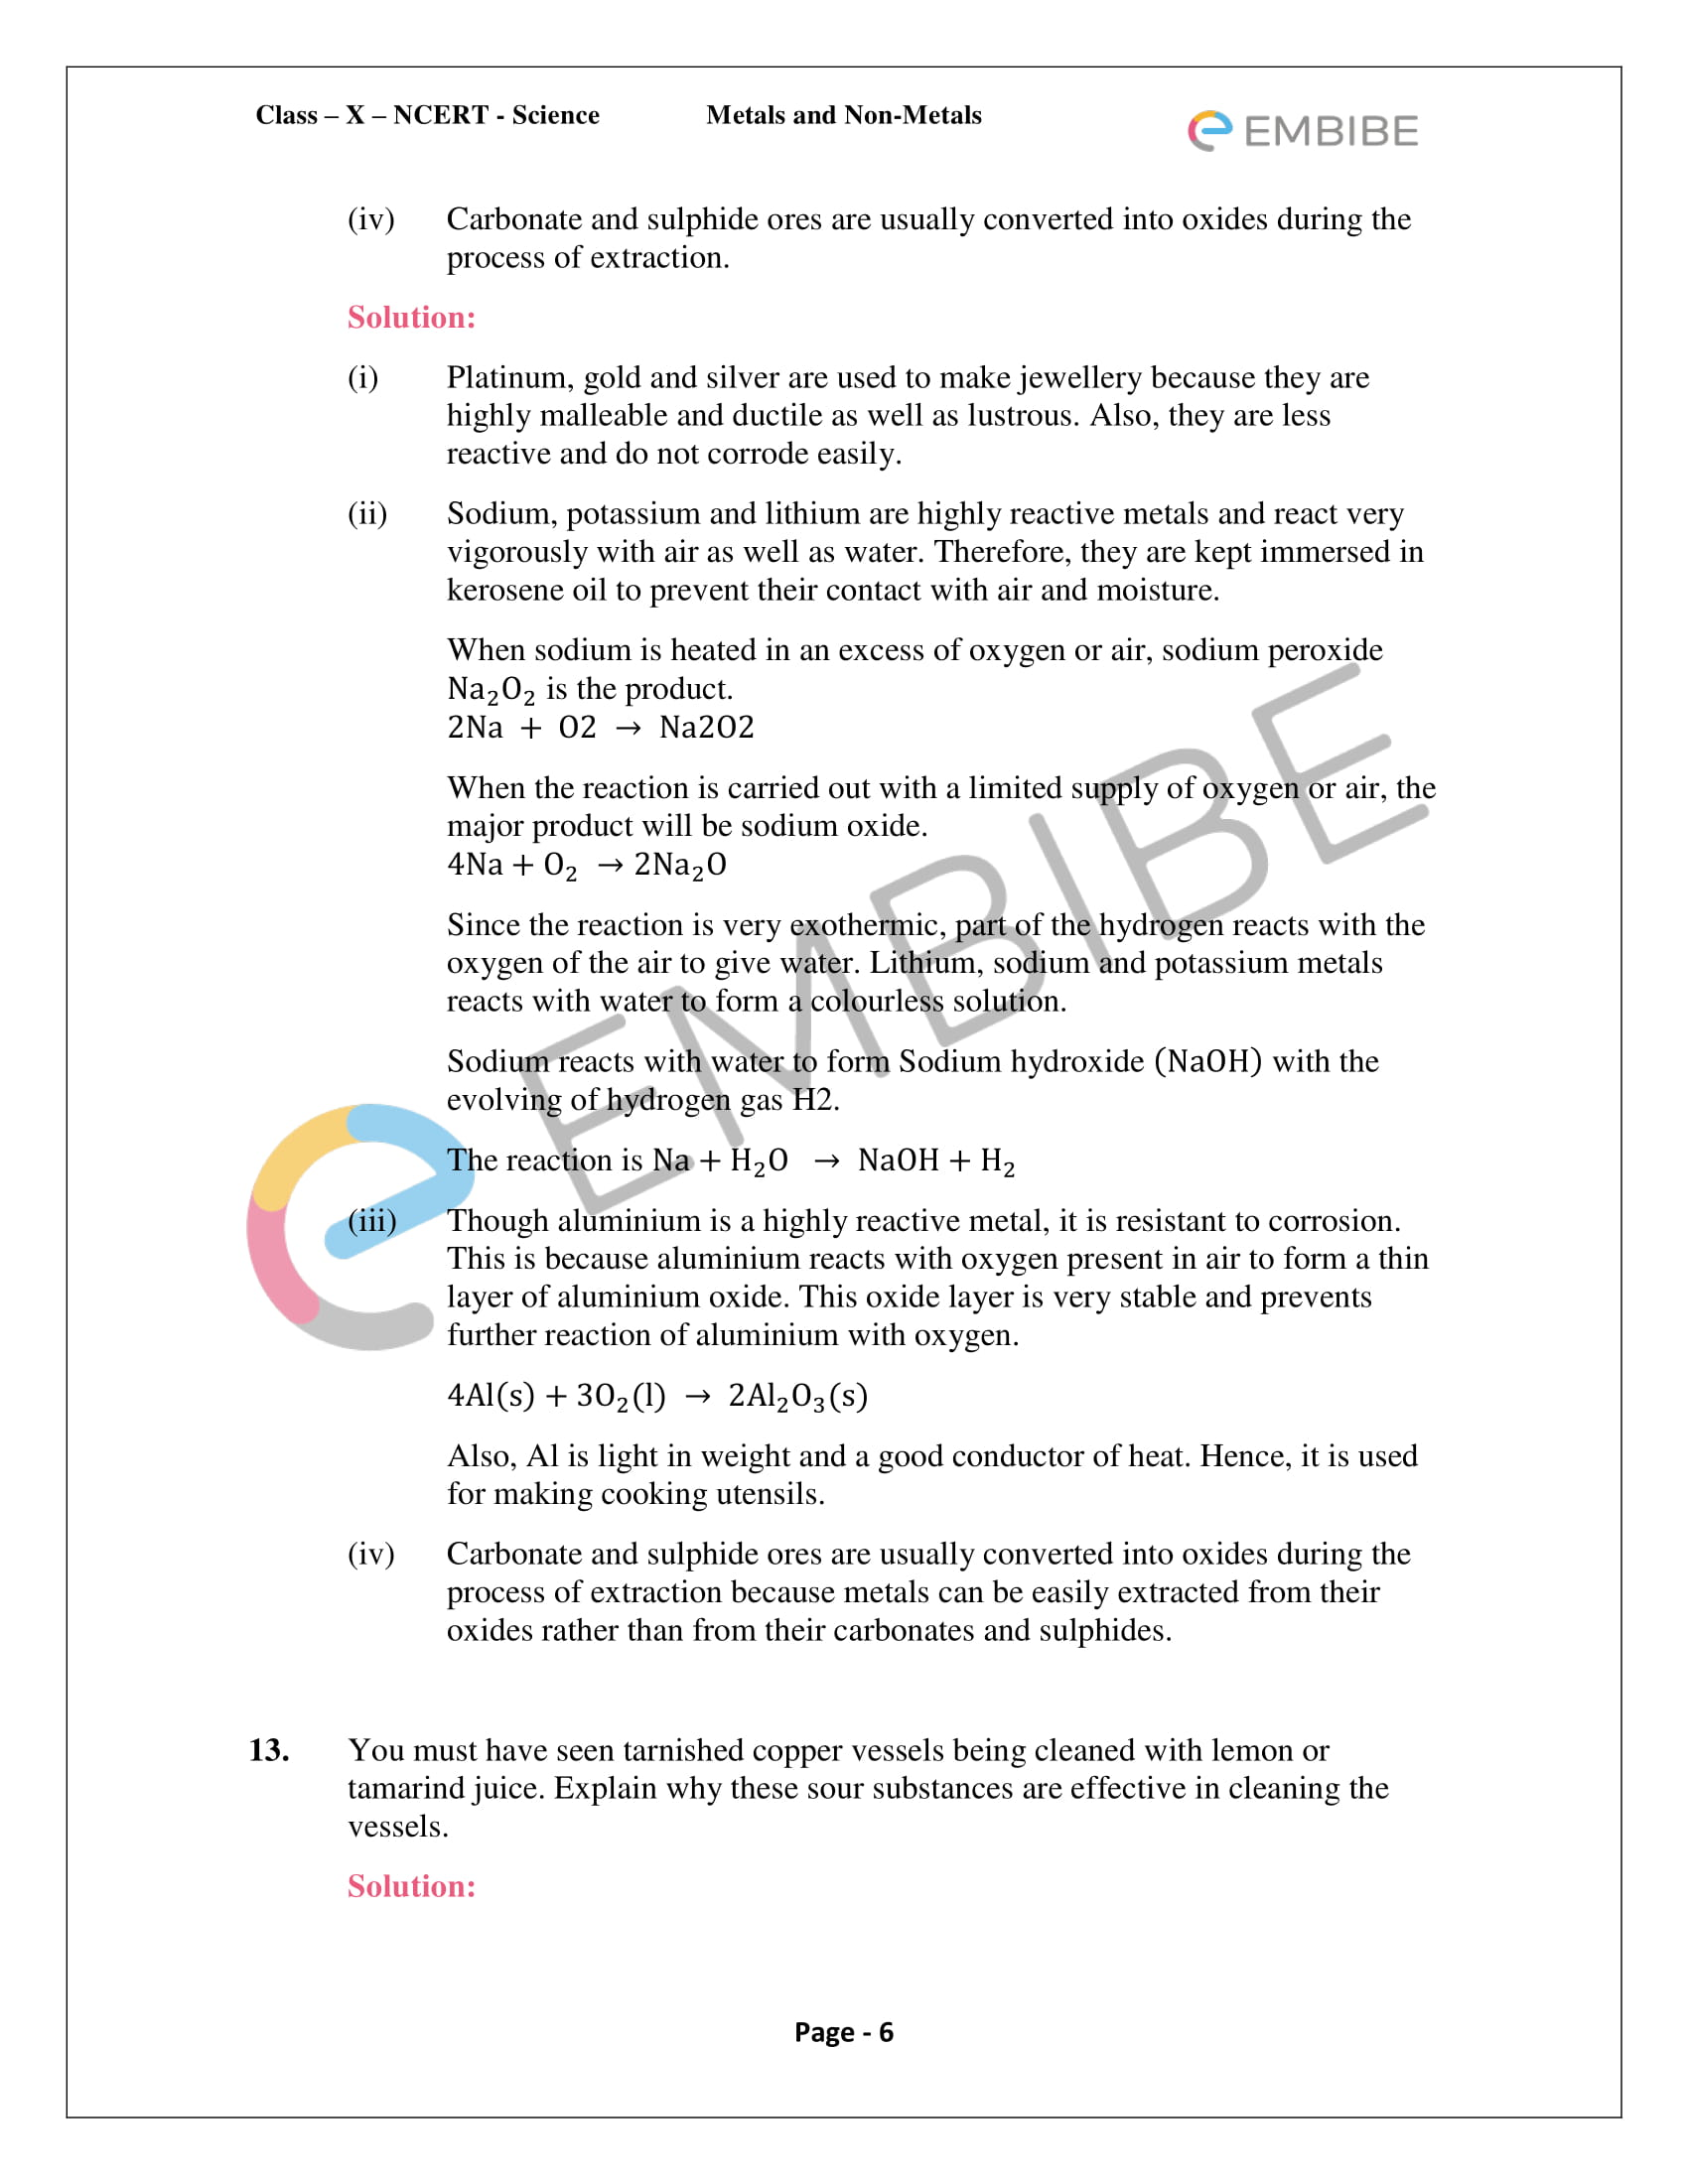 NCERT Solutions For Class 10 Science Chapter 3: Metals and